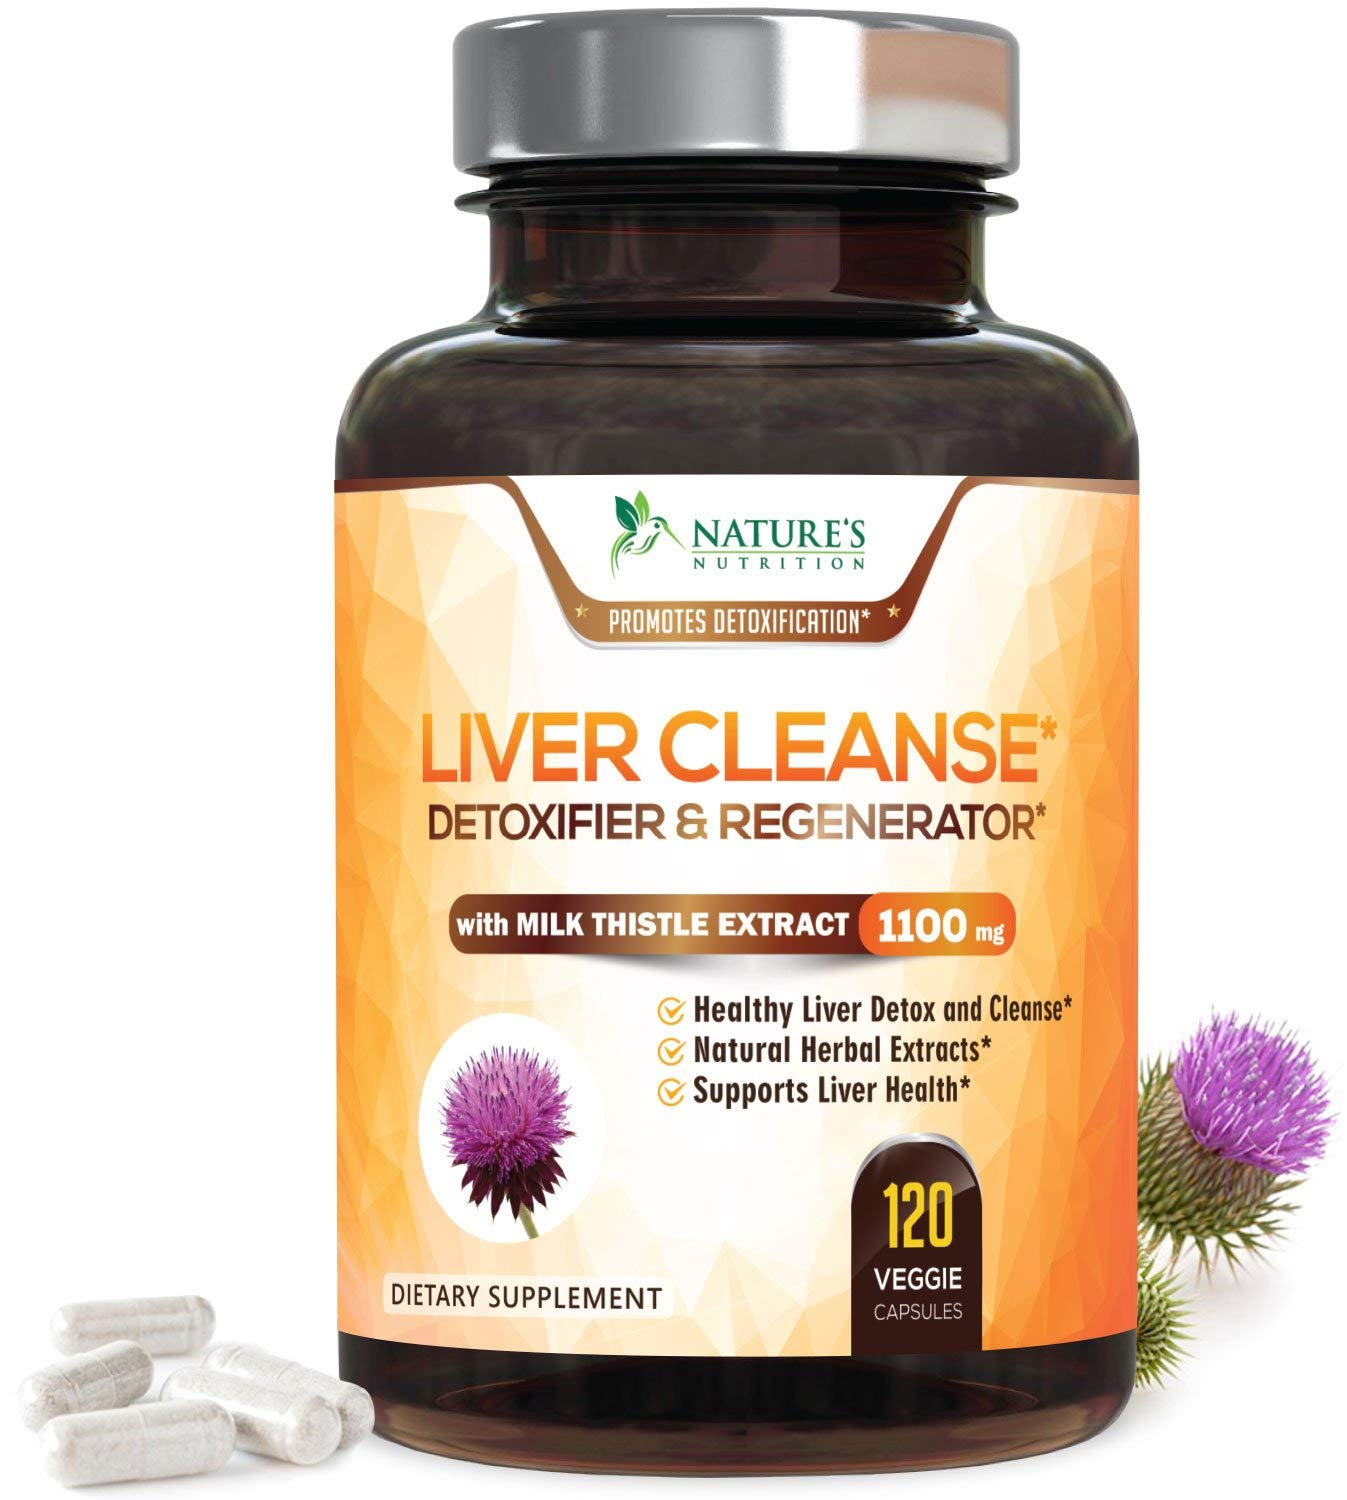 Liver Cleanse Detox & Repair Formula 1100mg - Highest Potency 22 Herbs, Made in USA, Best Vegan Milk Thistle Extract, Silymarin, Beet, Artichoke, Dandelion, Chicory, Support Supplement - 120 Capsules by Nature's Nutrition